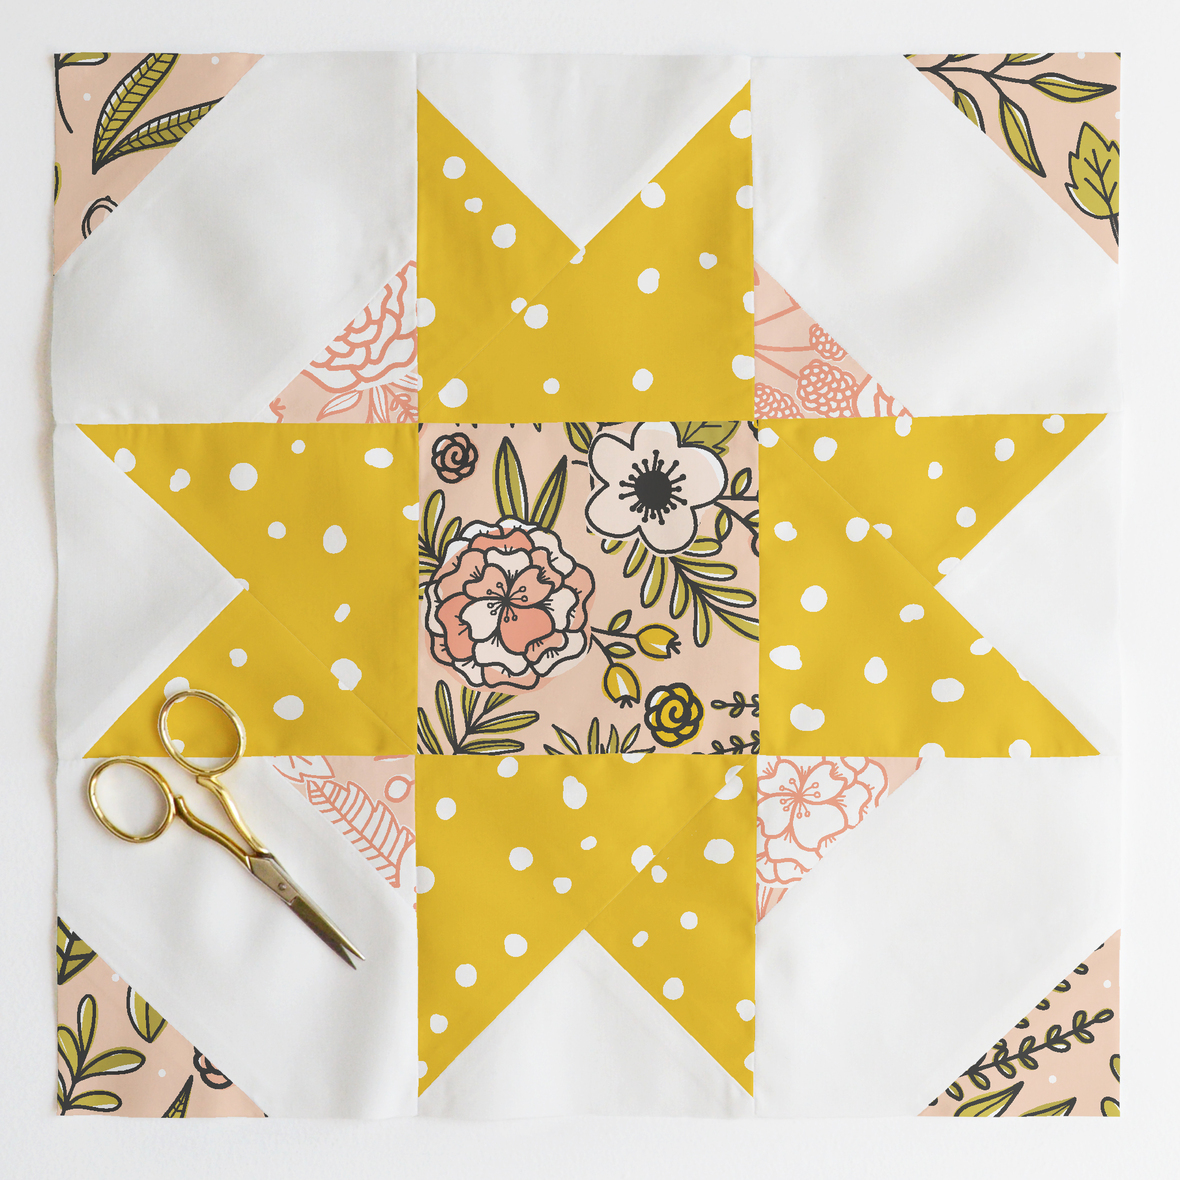 Compass Star Peachy Meadows 1